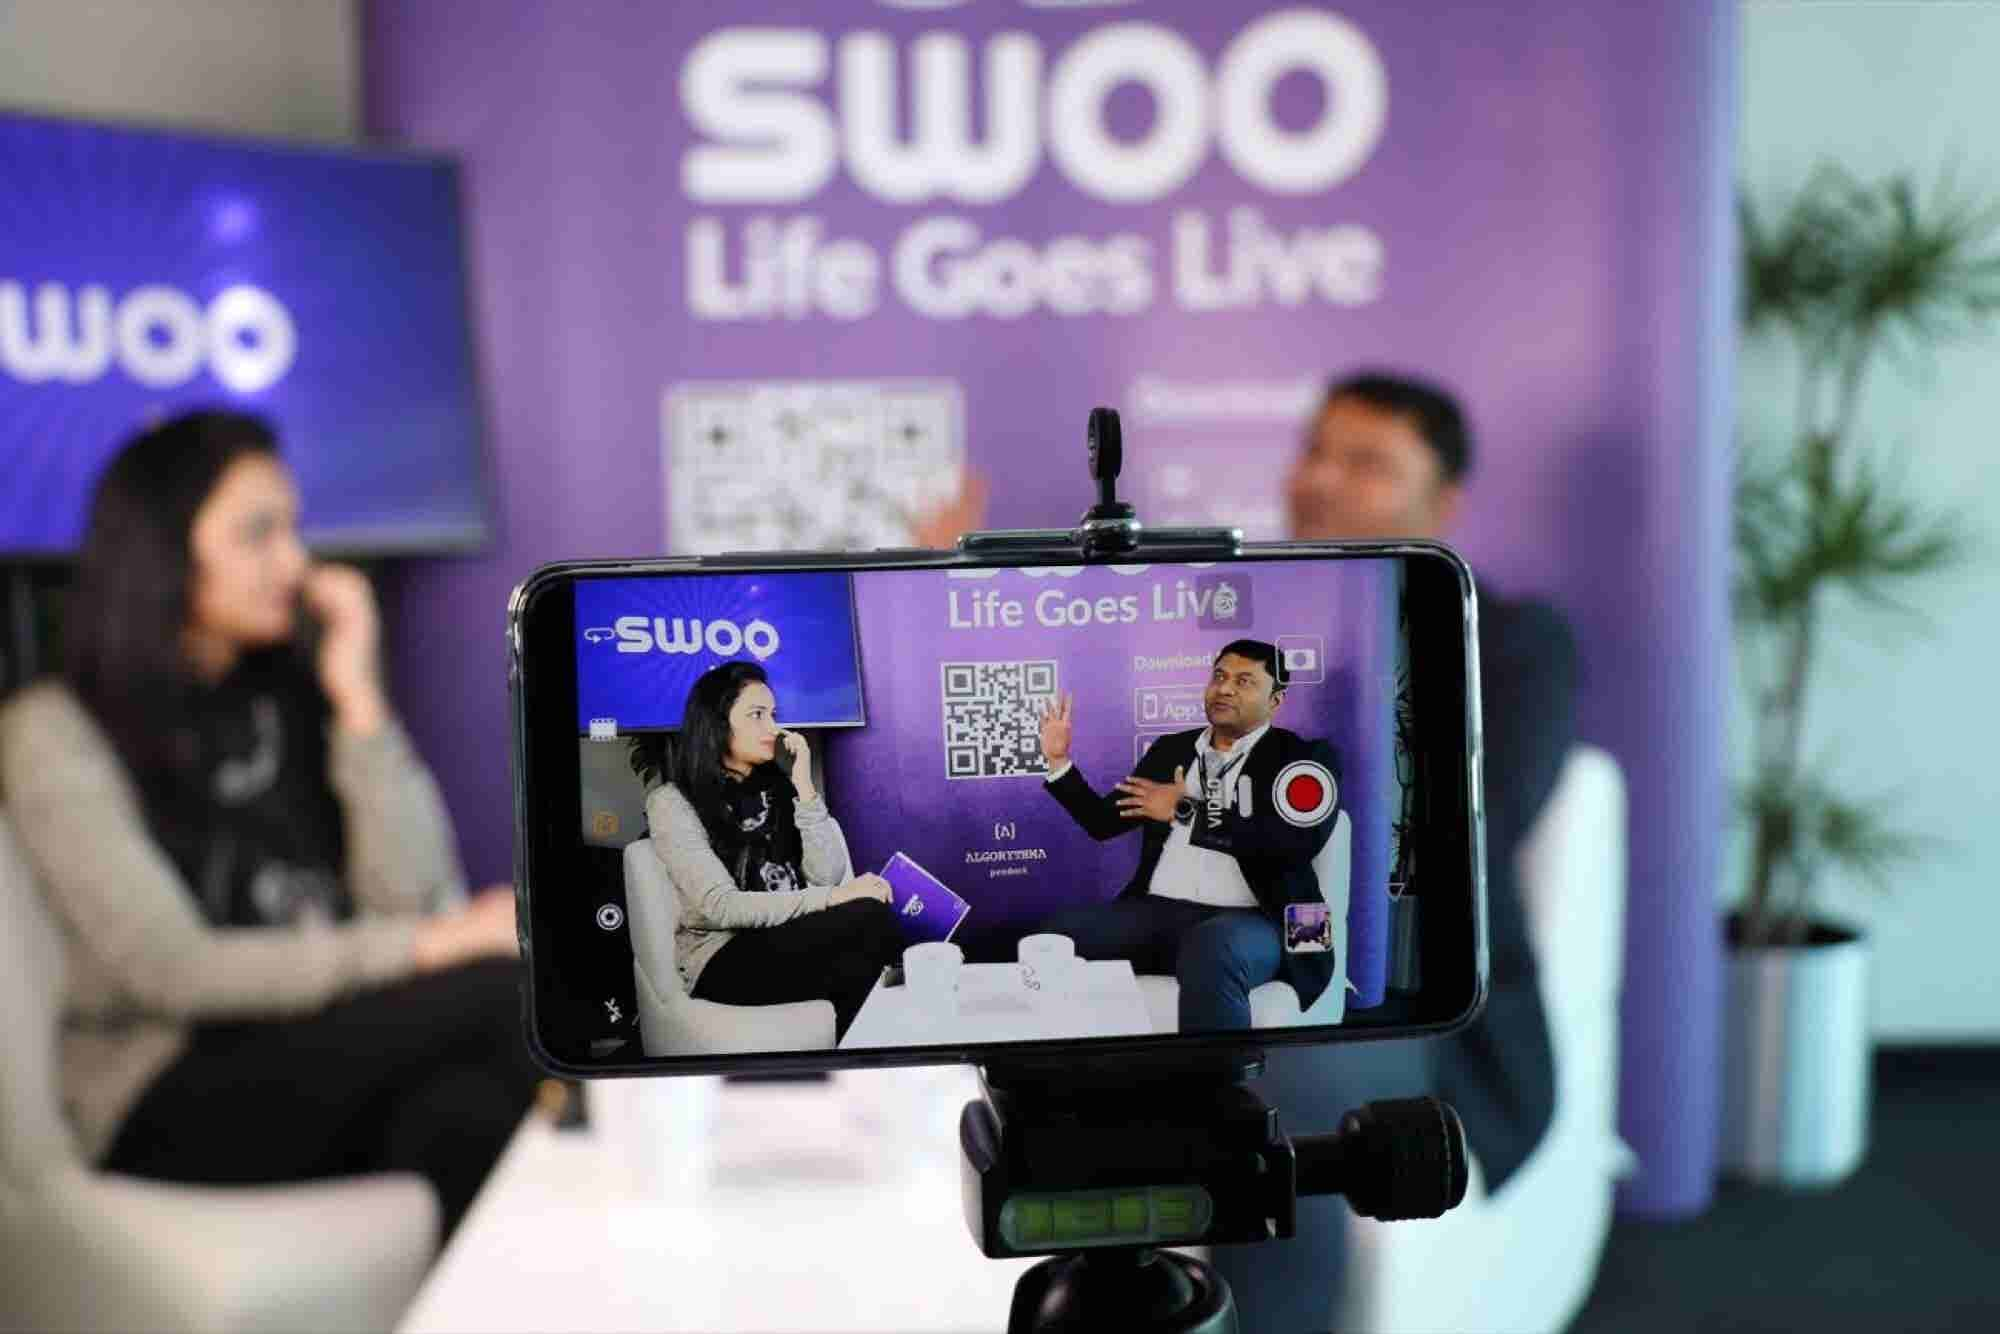 Get Engaged: Live Broadcasting App Swoo Aims To Make A Dent In UAE's Social Scene